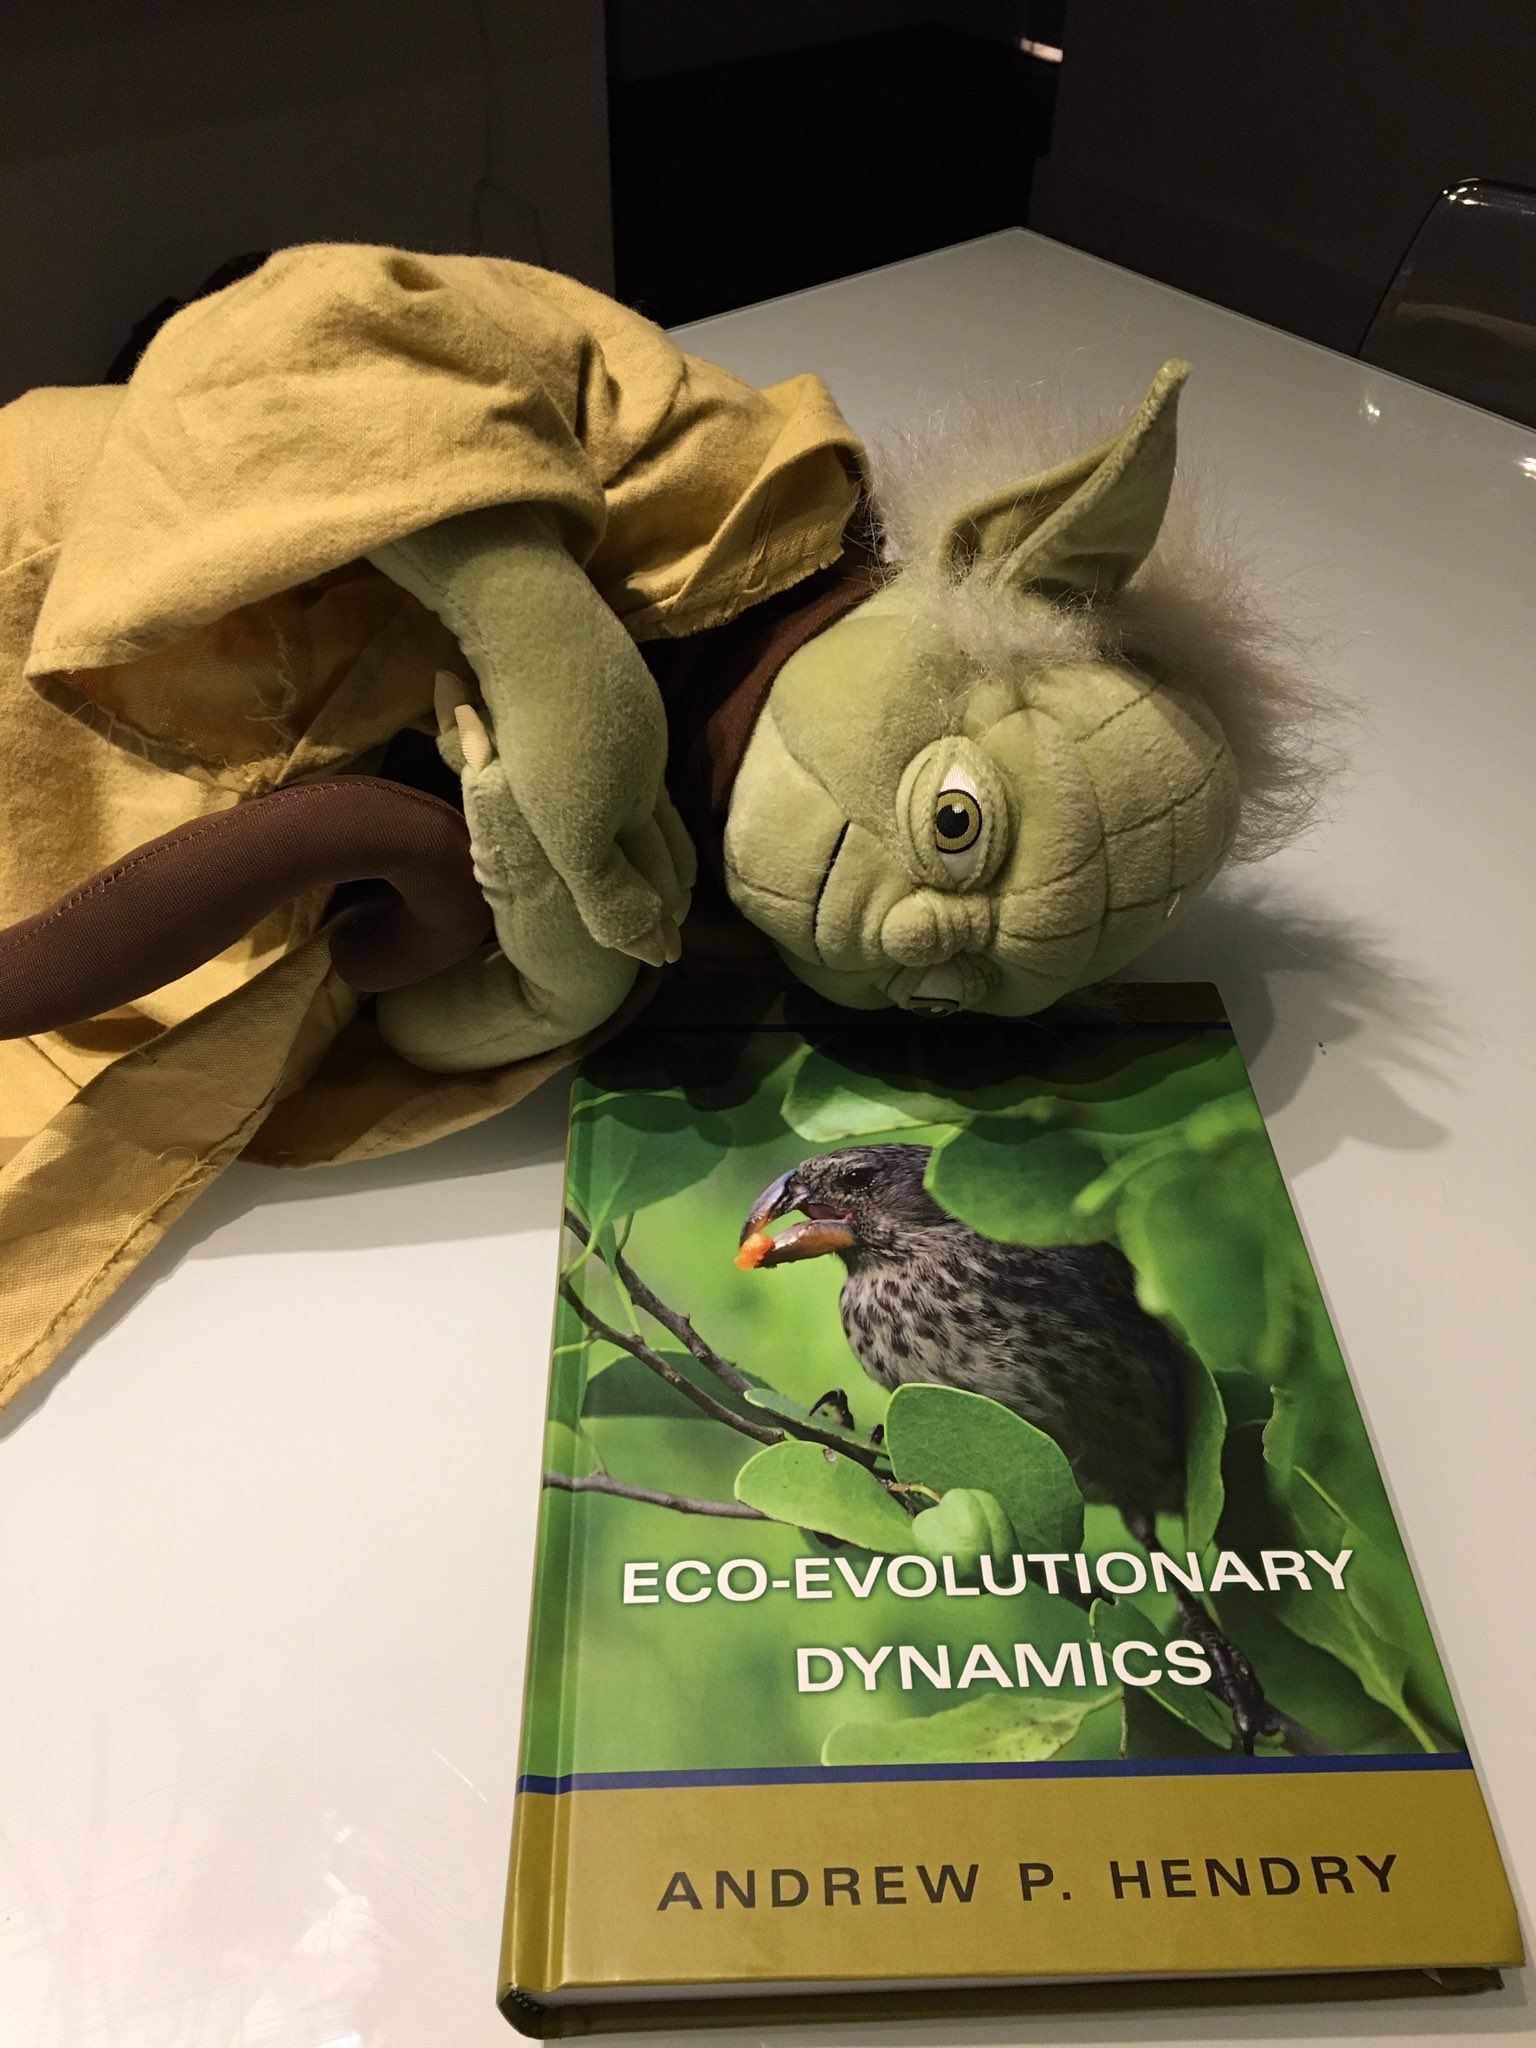 @EcoEvoEvoEco The force is strong with this one #PeopleWhoFellAsleepReadingMyBook Eco-evolutionary Dynamics @Princeton https://t.co/m11K6D2dCC